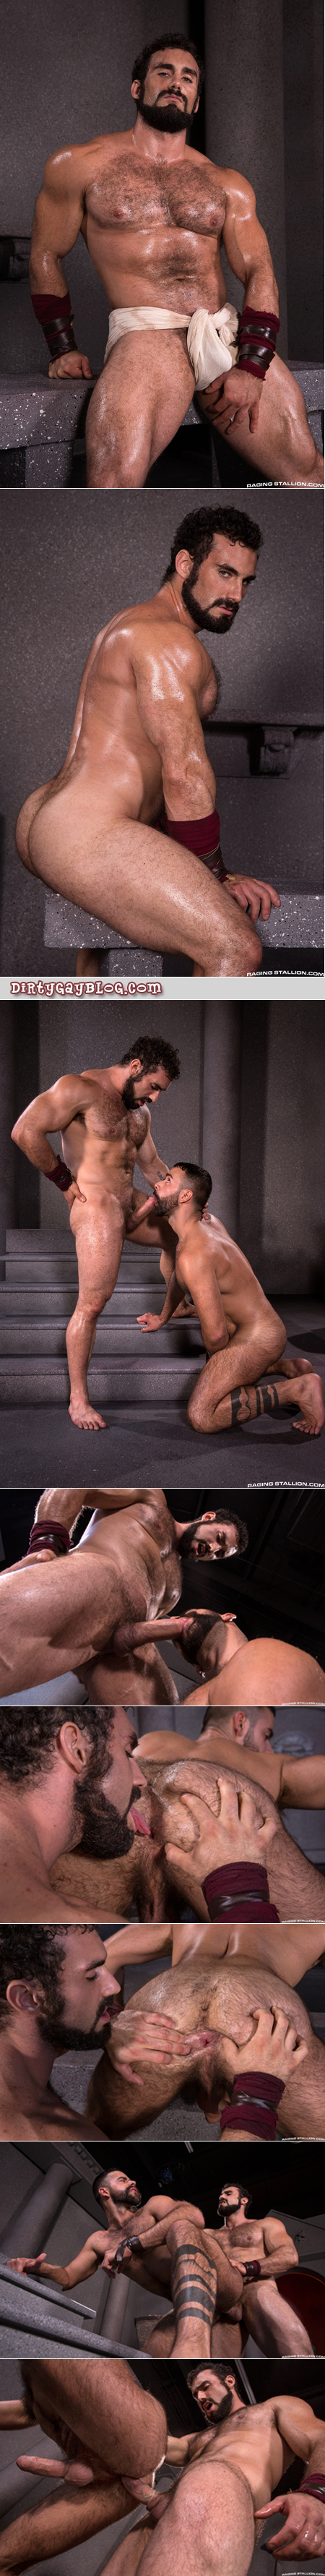 Hairy muscle hunks nude having gay sex.